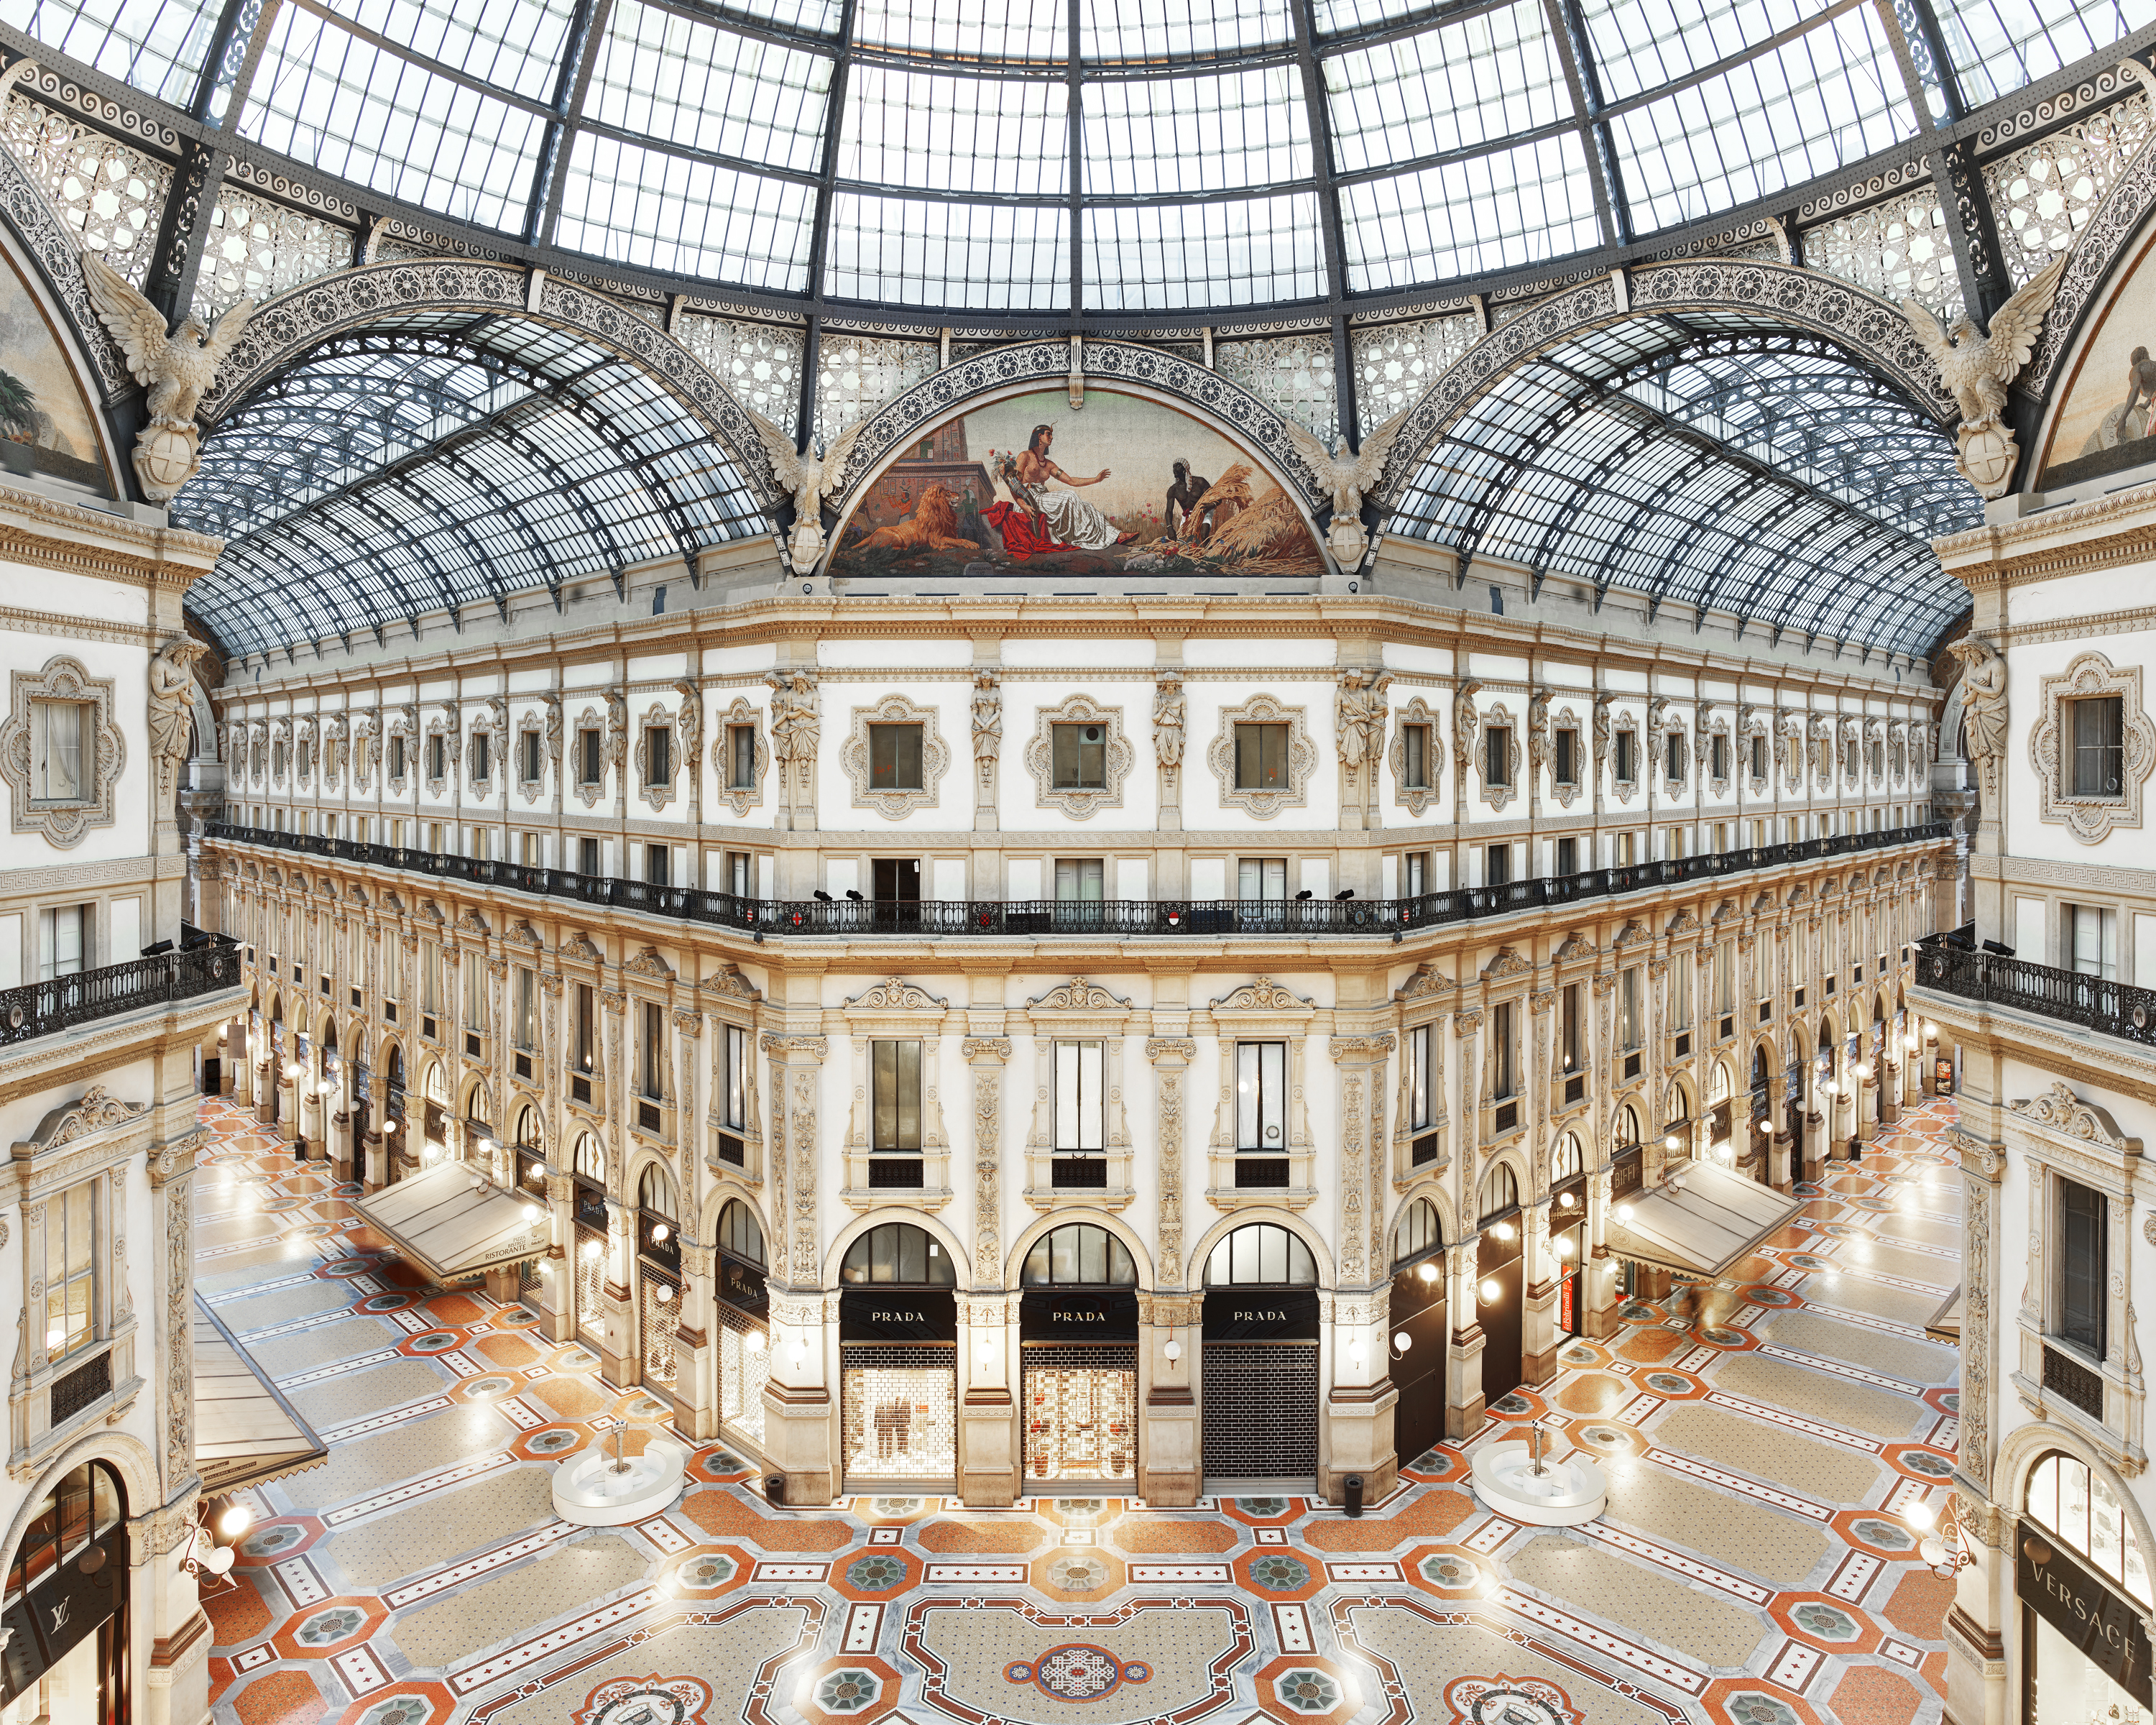 dating milan italy In italy sale times occur two times a year, according to the different  as its  starting date, and 60 days later as the ending date of the summer.